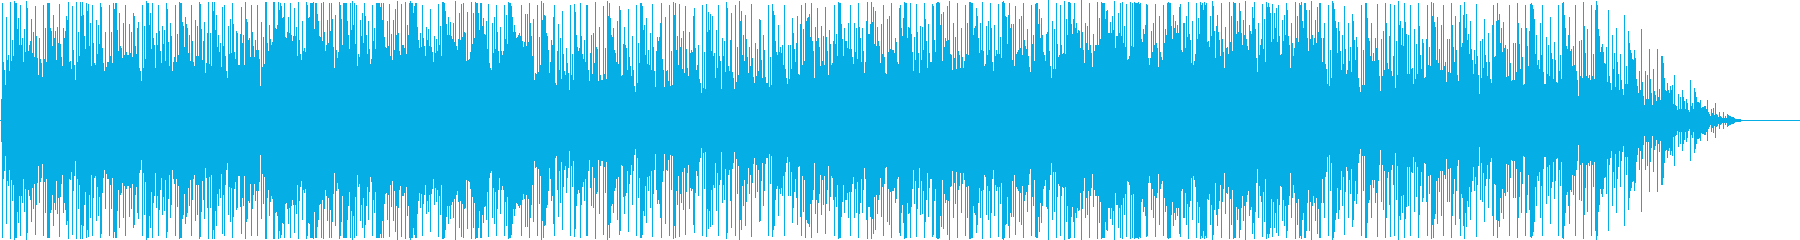 Nostalgic and fantastic BGM's reproduced waveform